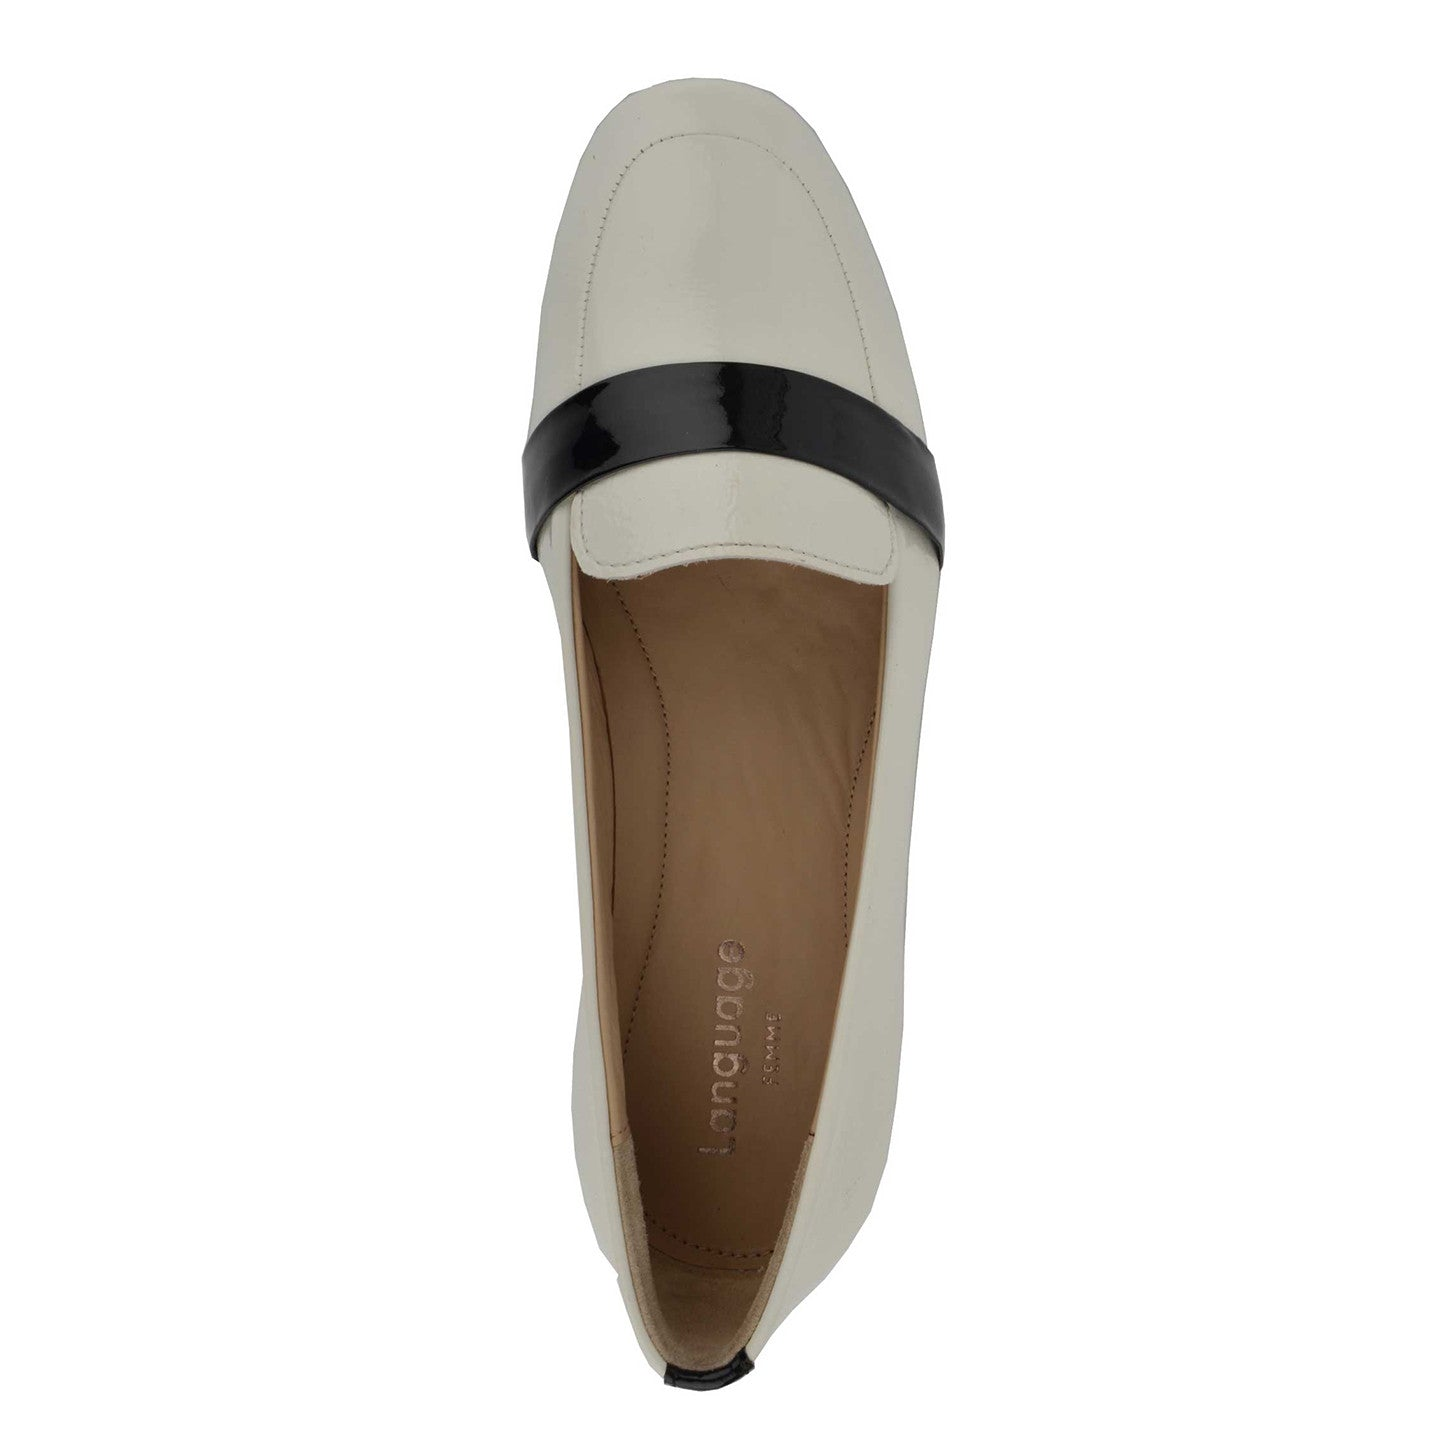 LW053 - Language Verona Women's Casual White Loafers